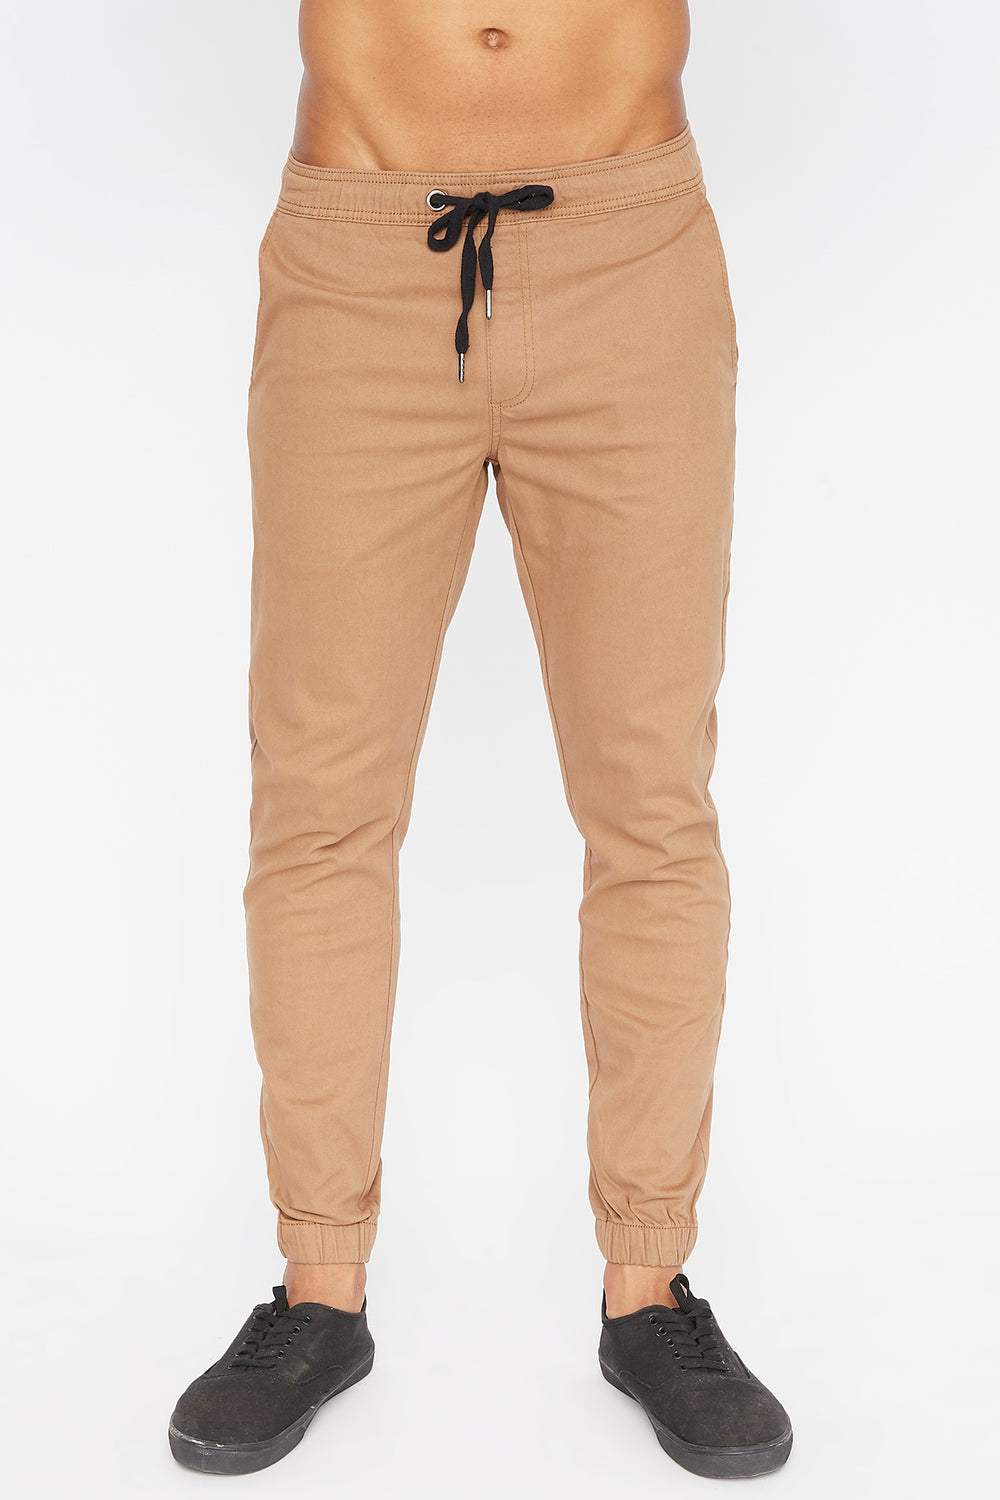 West49 Mens Solid Twill Basic Jogger Camel